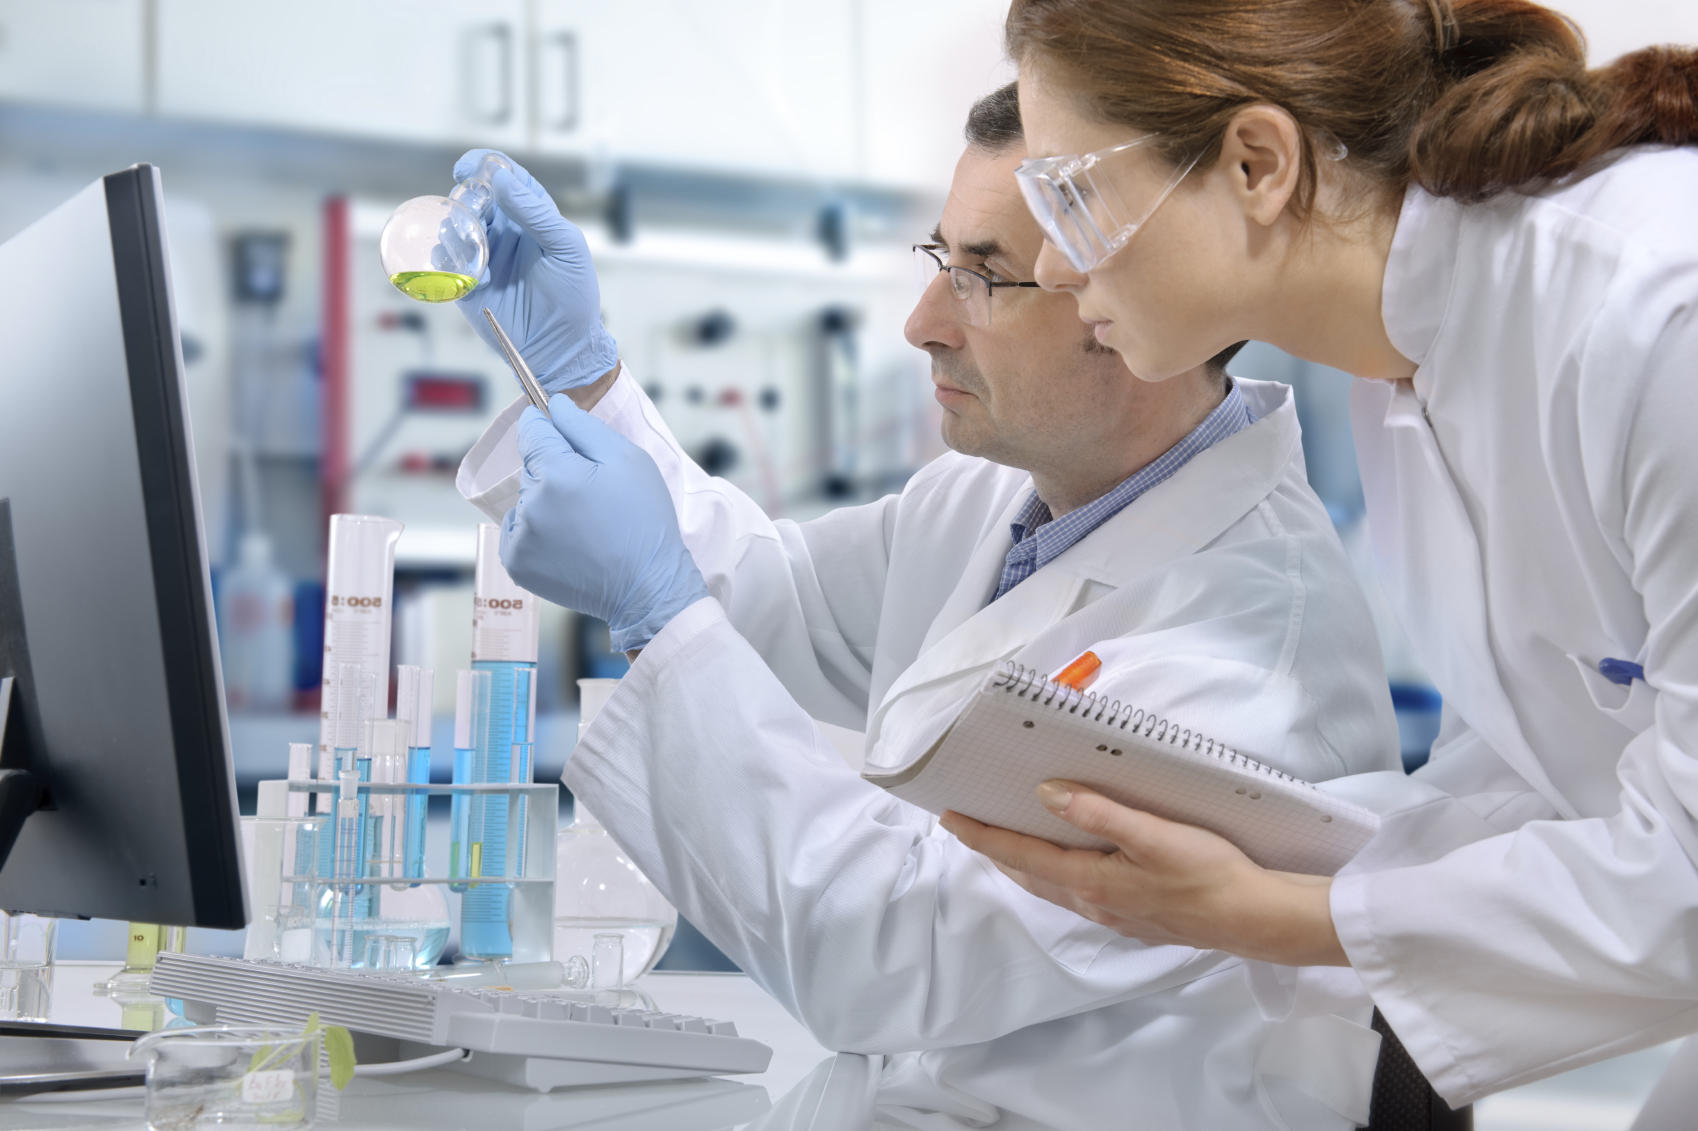 As effects of sequester take effect, scientists worry about future ...